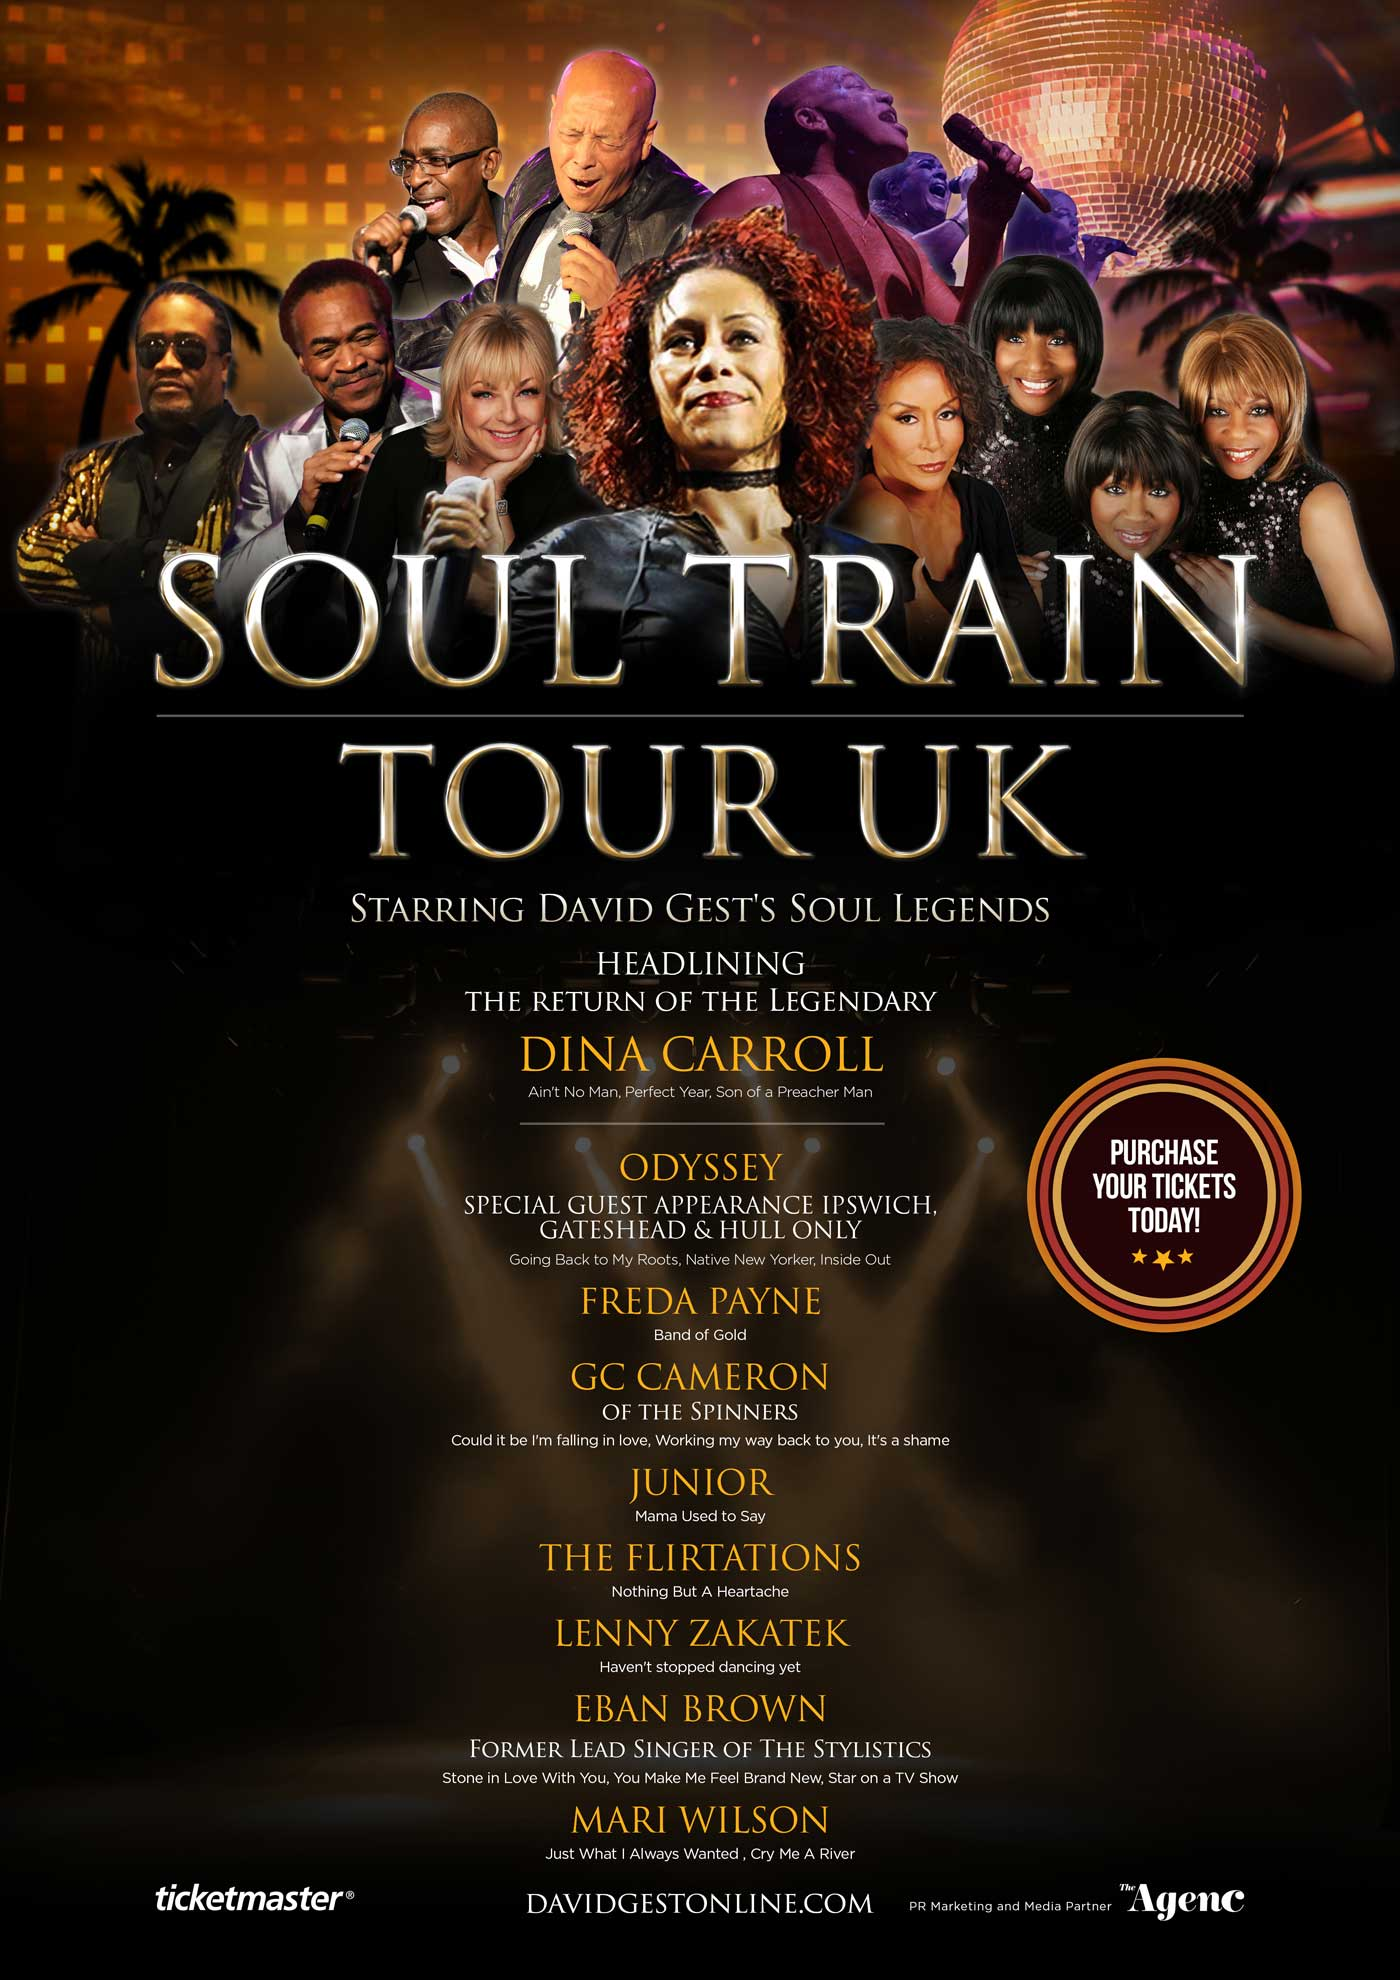 Soul Train Tour UK